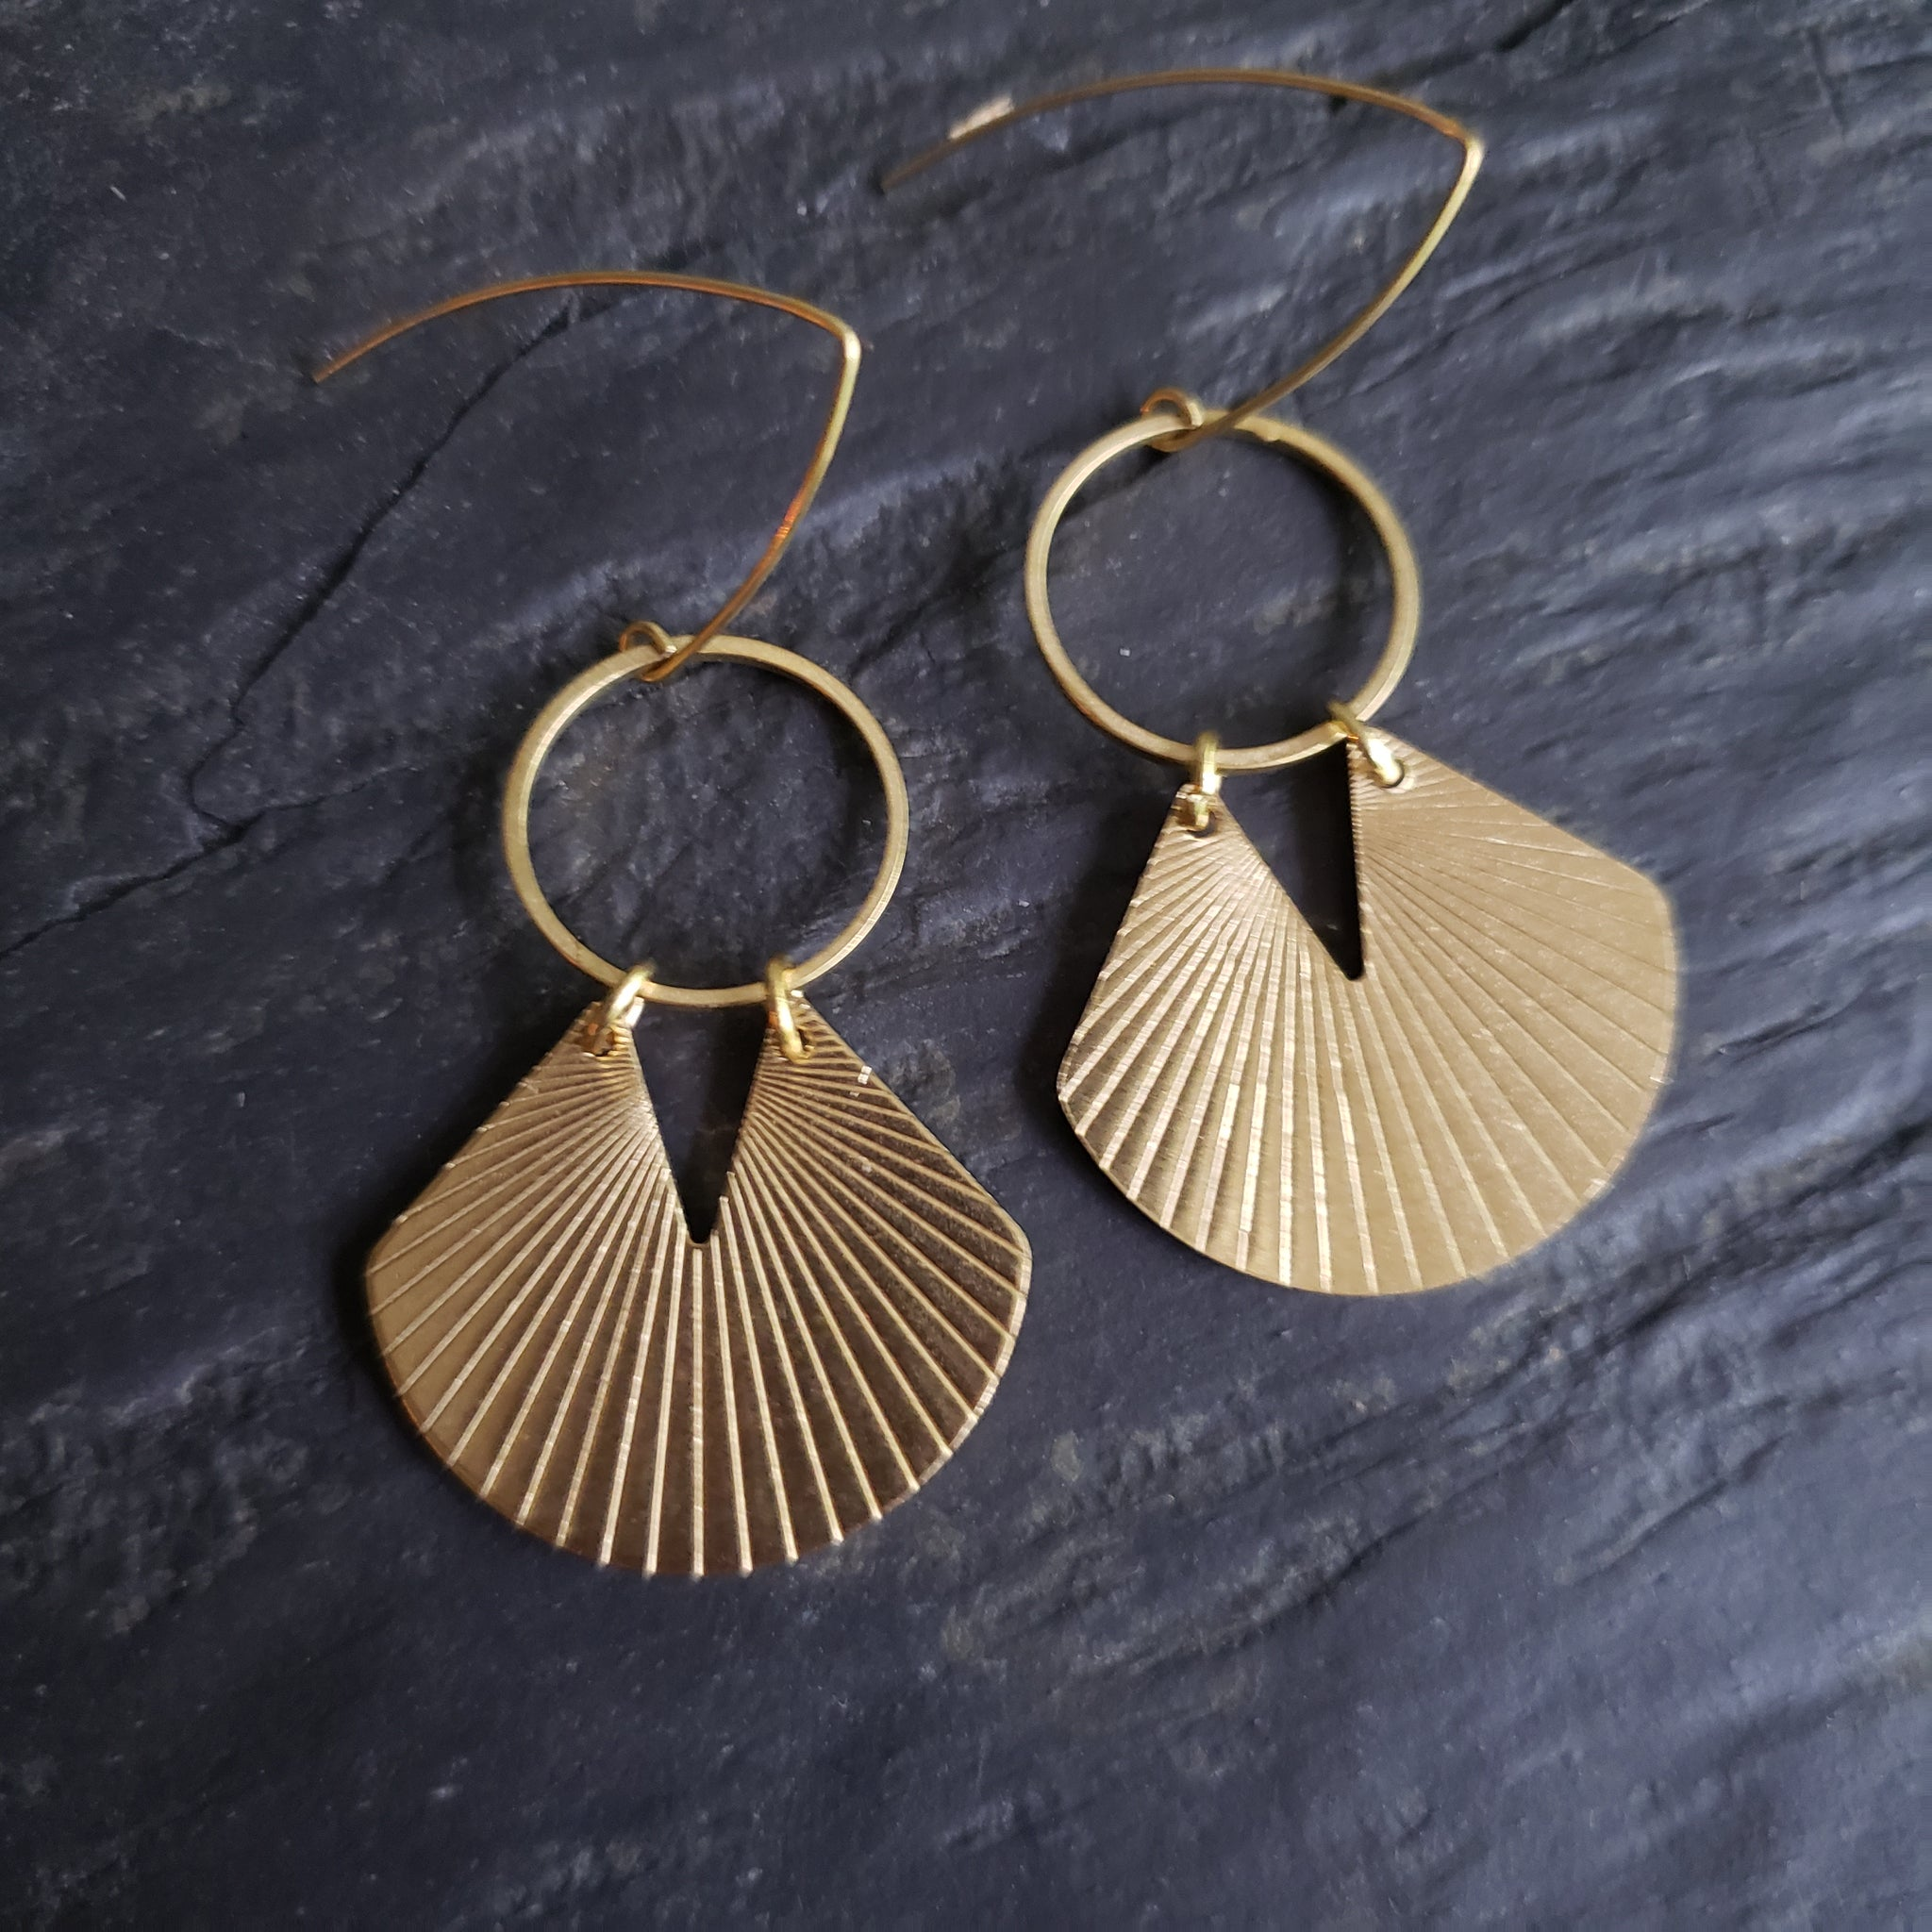 OXOX Ridged Brass Earrings